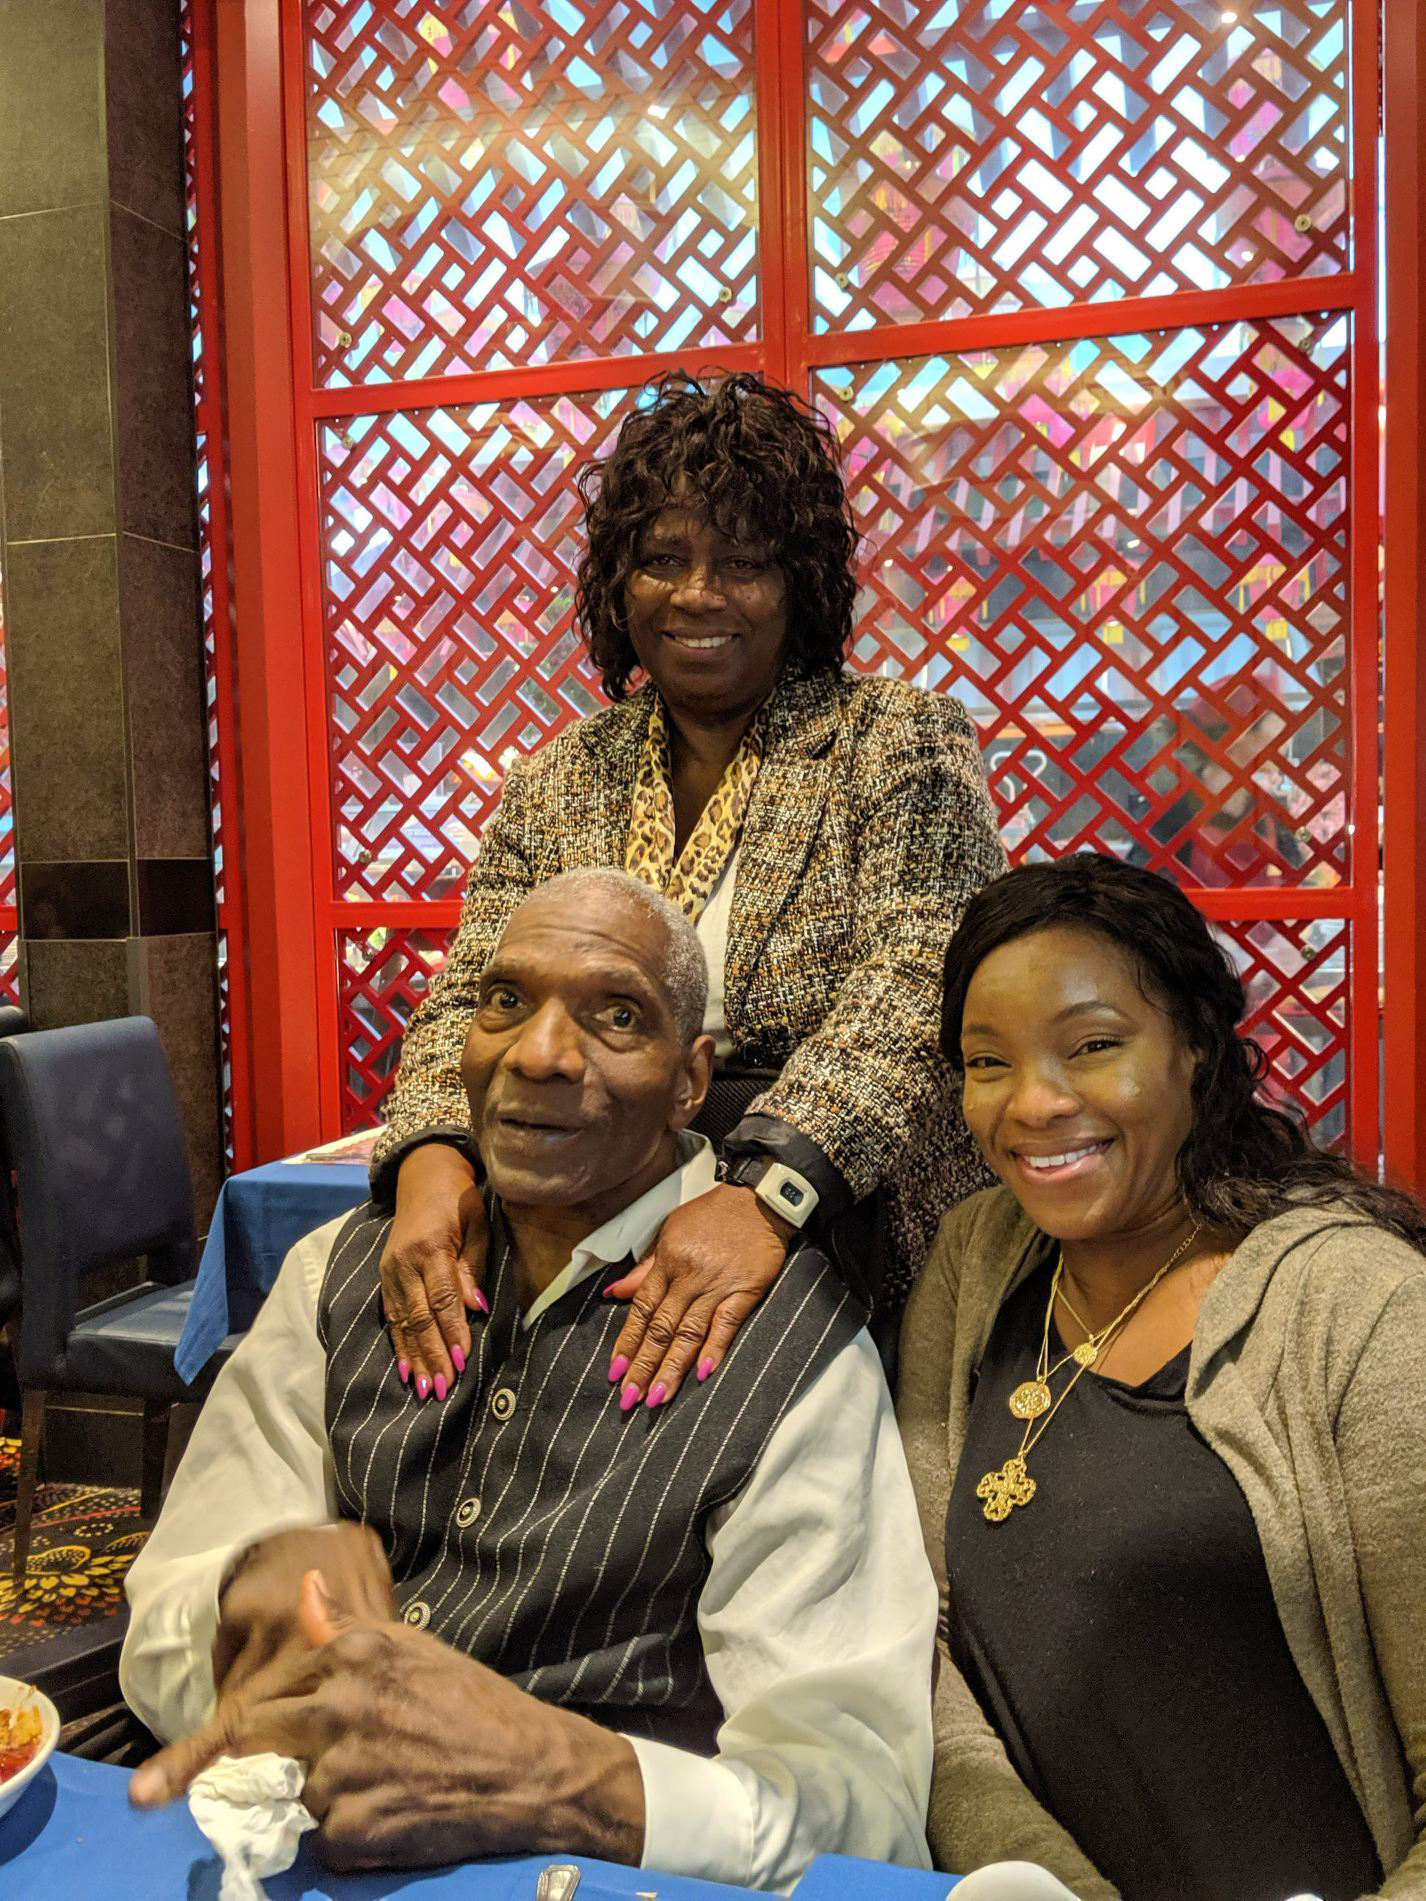 Christine Tappin and her mother took her father out of Orchard Villa for the evening to celebrate what would be his last birthday, on October 8, 2019.